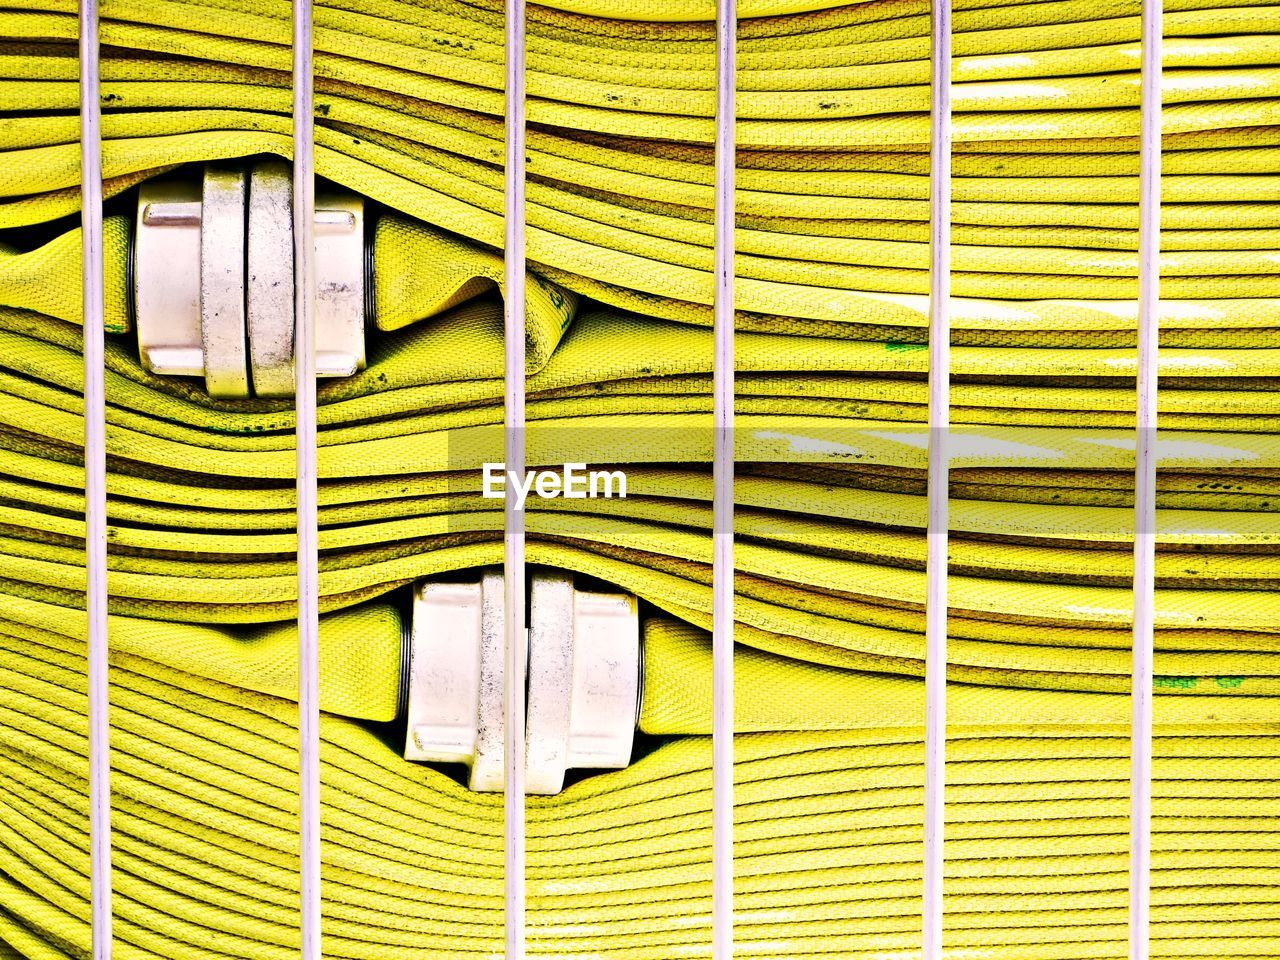 no people, full frame, pattern, close-up, green color, yellow, metal, wall - building feature, day, mailbox, indoors, built structure, backgrounds, architecture, protection, hygiene, connection, hanging, clothing, corrugated